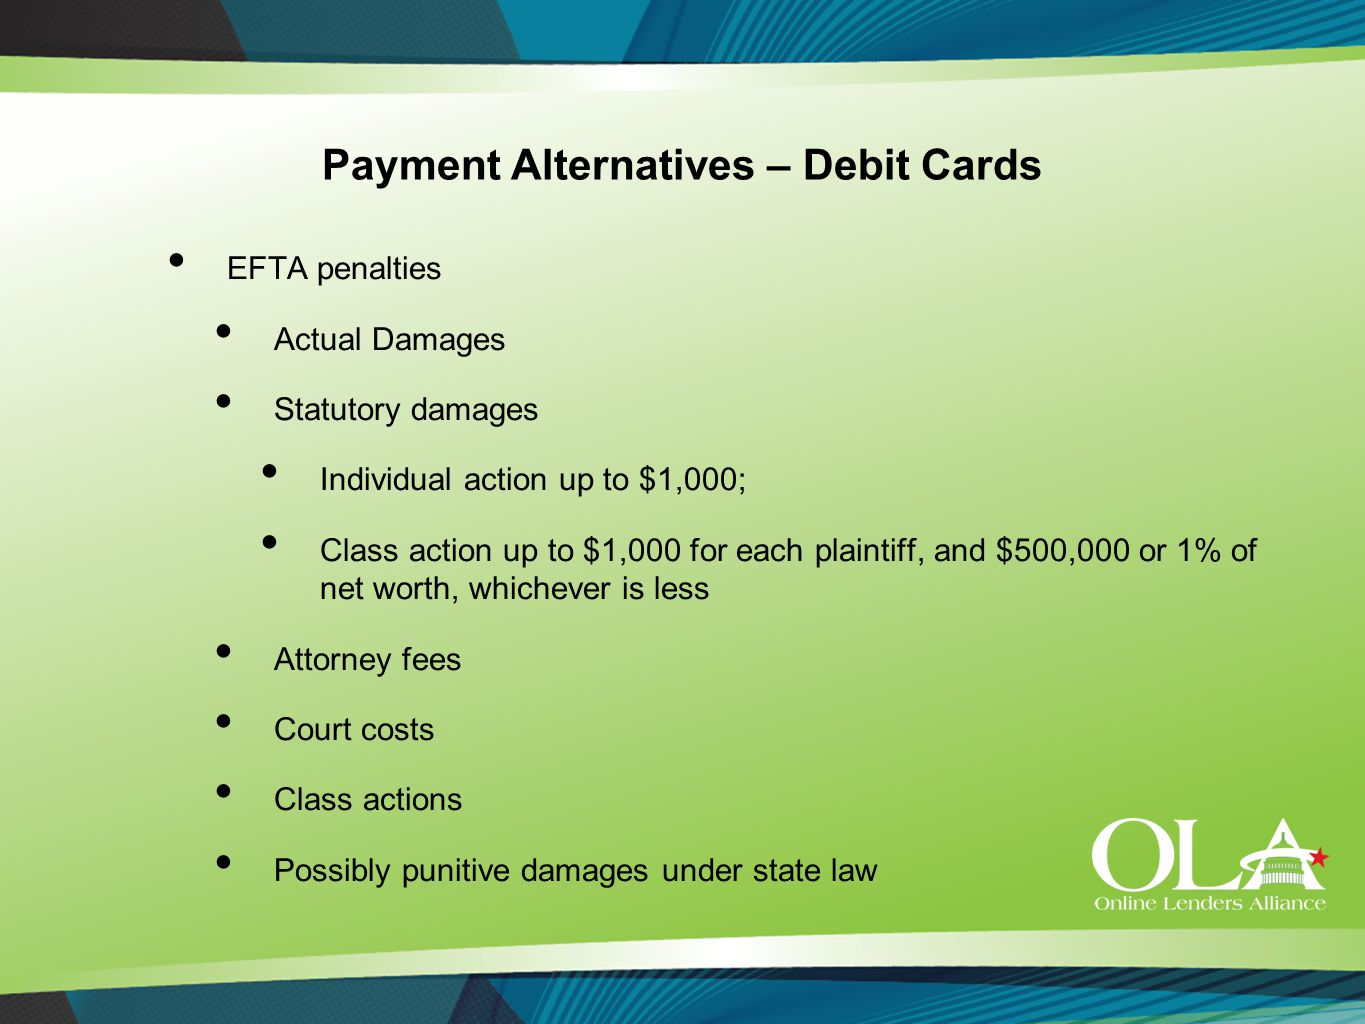 Payment Alternatives – Debit Cards EFTA penalties Actual Damages Statutory damages Individual action up to $1,000; Class action up to $1,000 for each